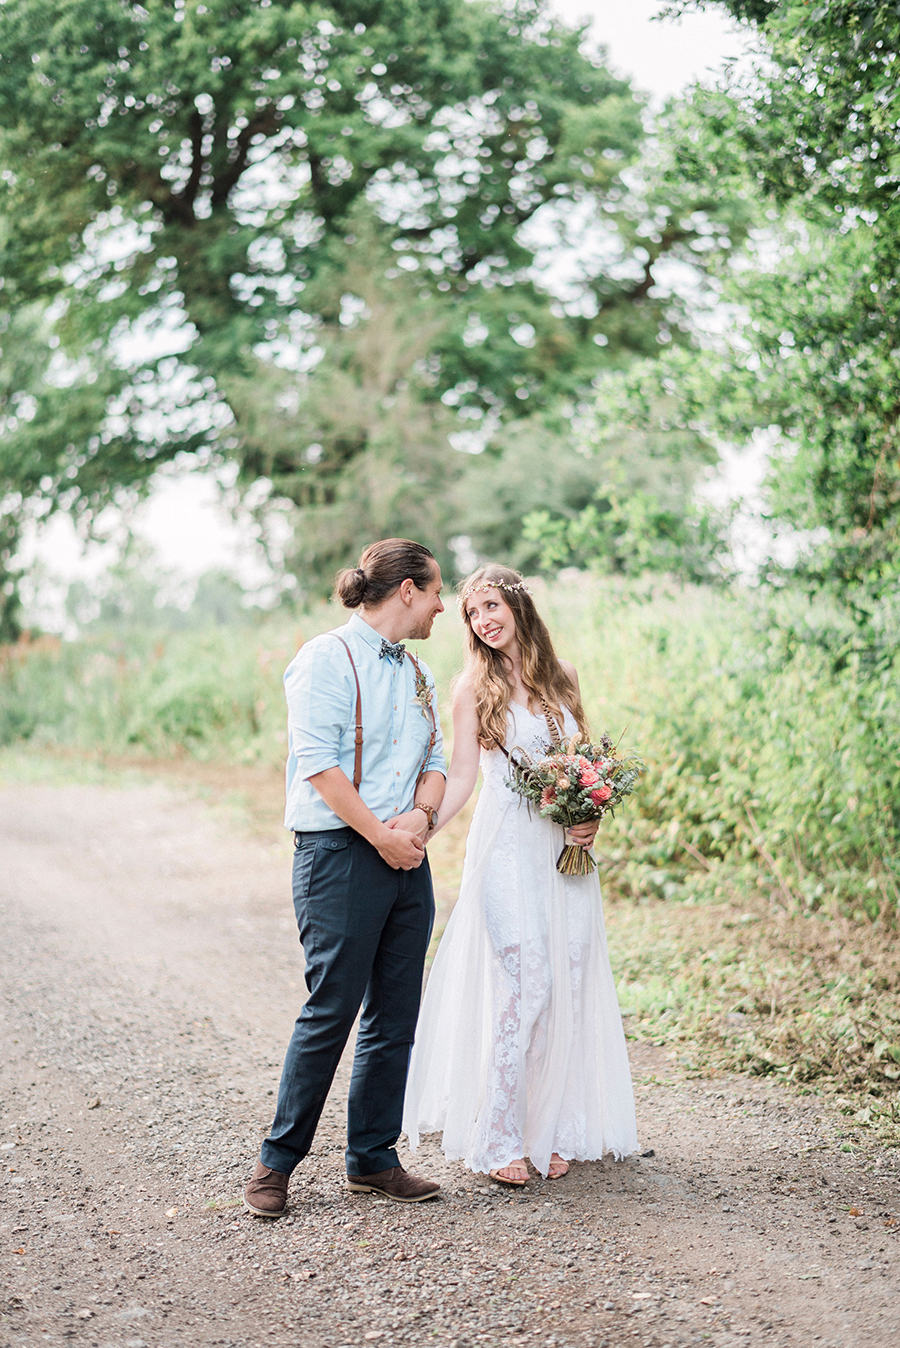 Dreamy boho wedding at Houchins Farm with images by Kathryn Hopkins Photography (32)